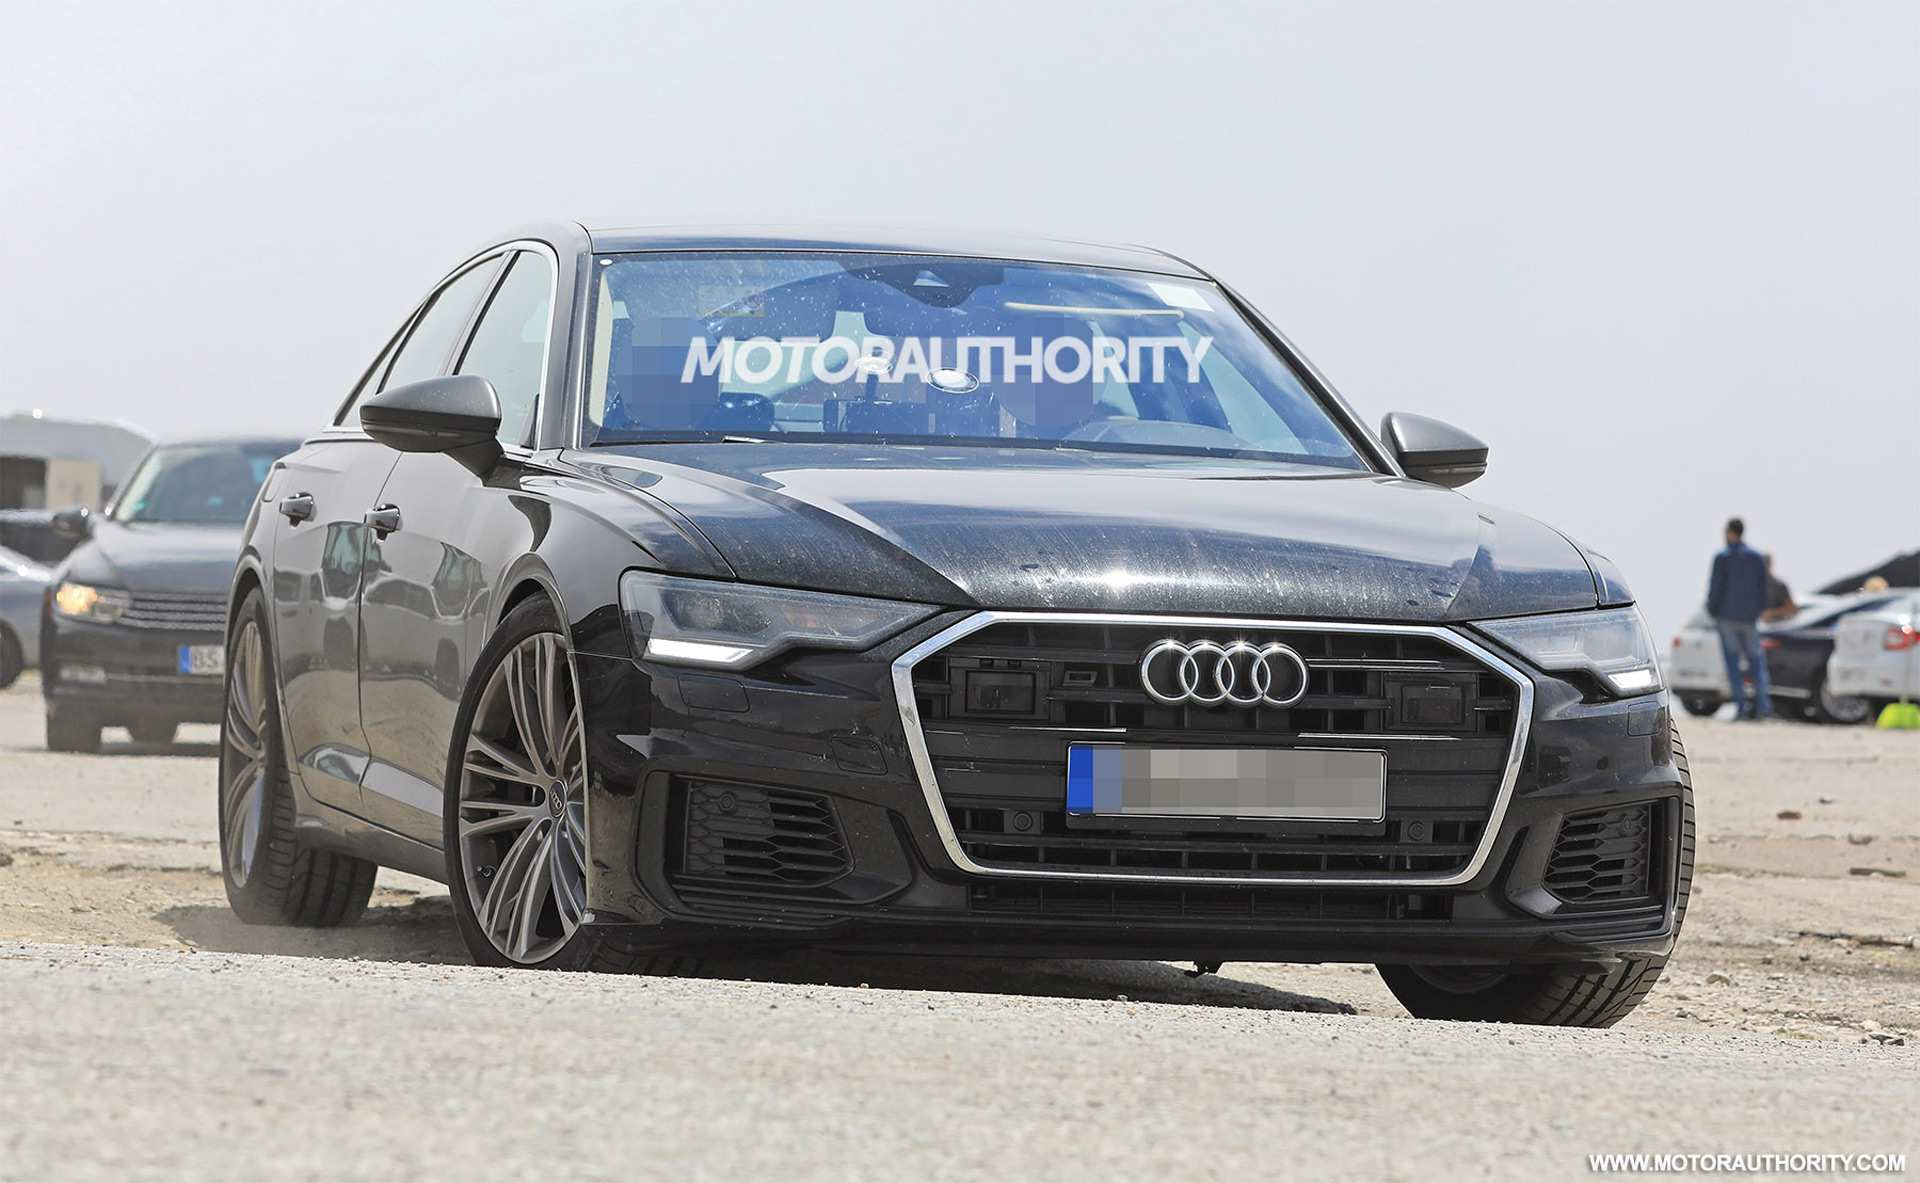 34 Gallery of The Audi 2019 Changes Spy Shoot Model for The Audi 2019 Changes Spy Shoot